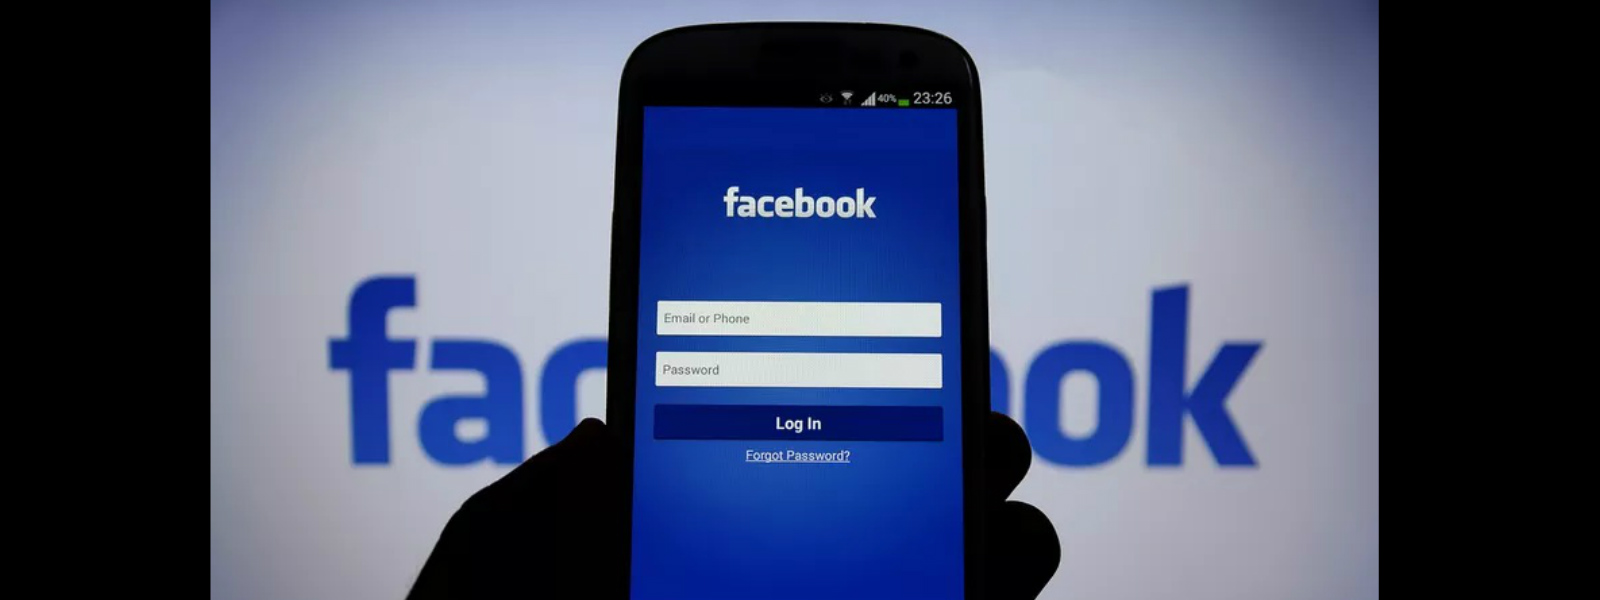 Temporary block on Facebook and other Social Media likely to be lifted